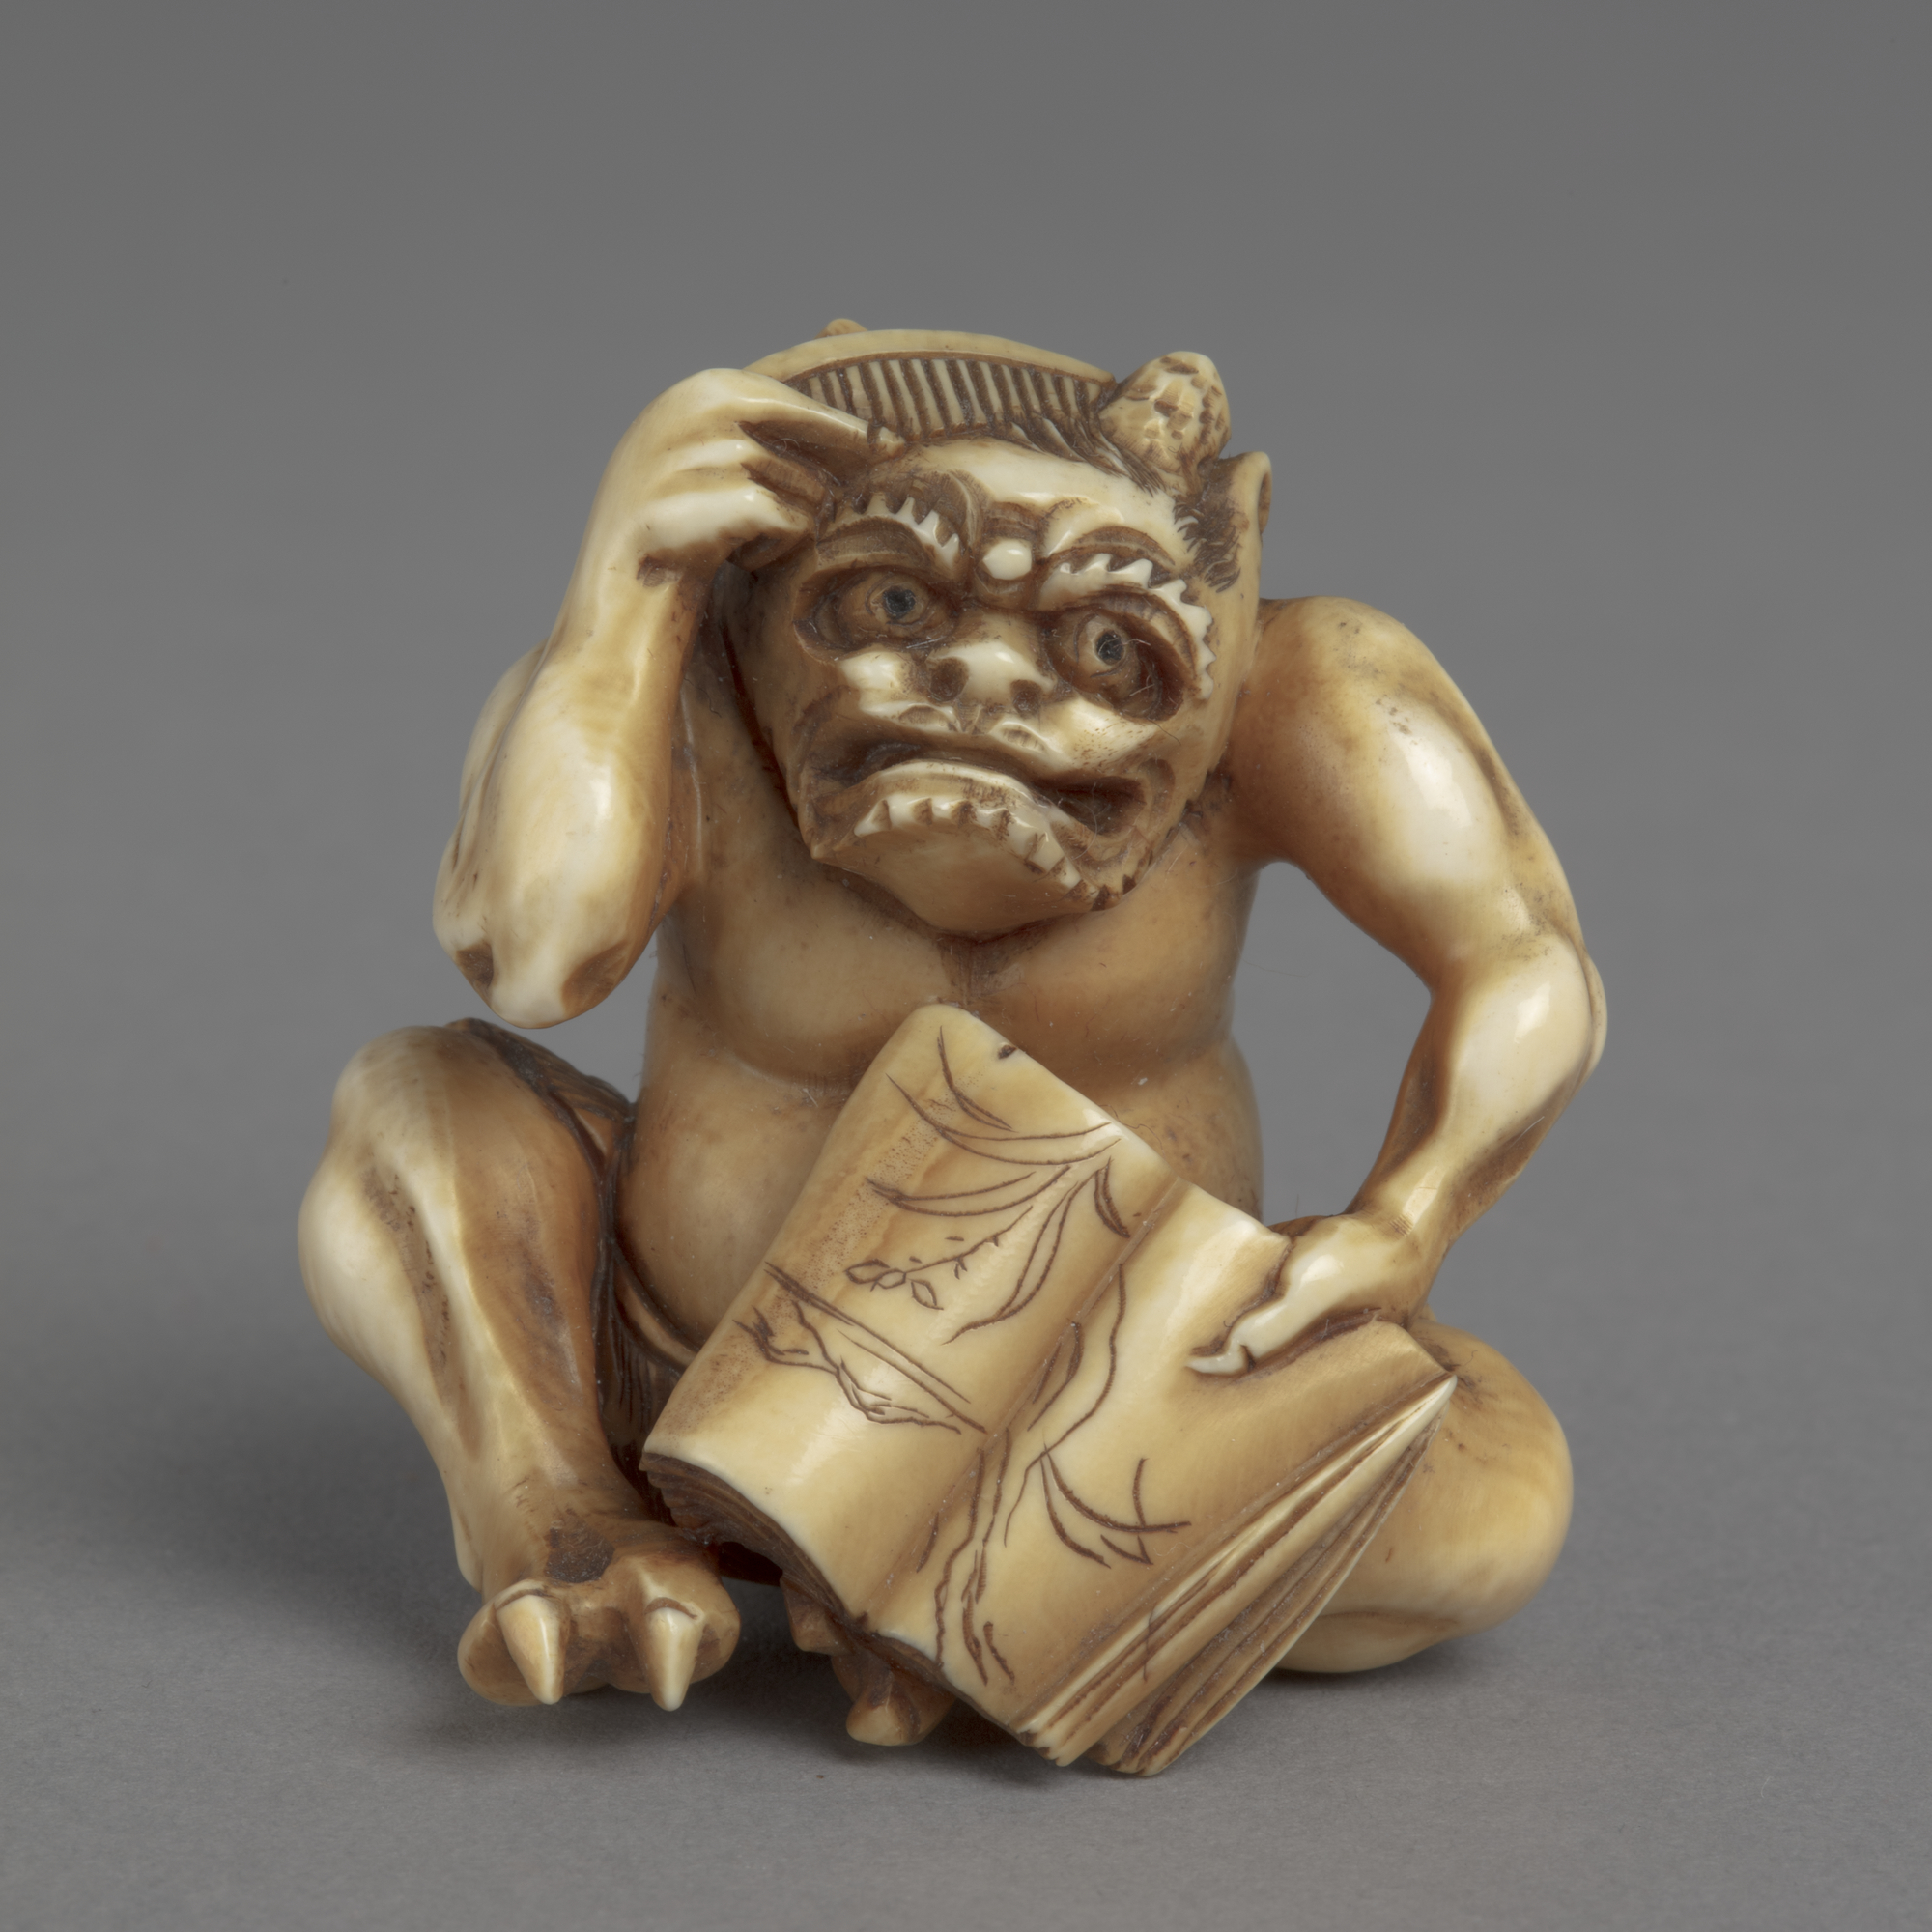 A Japanese ivory okimono ornament of a seated demon holding open book and combing long hair with left hand.